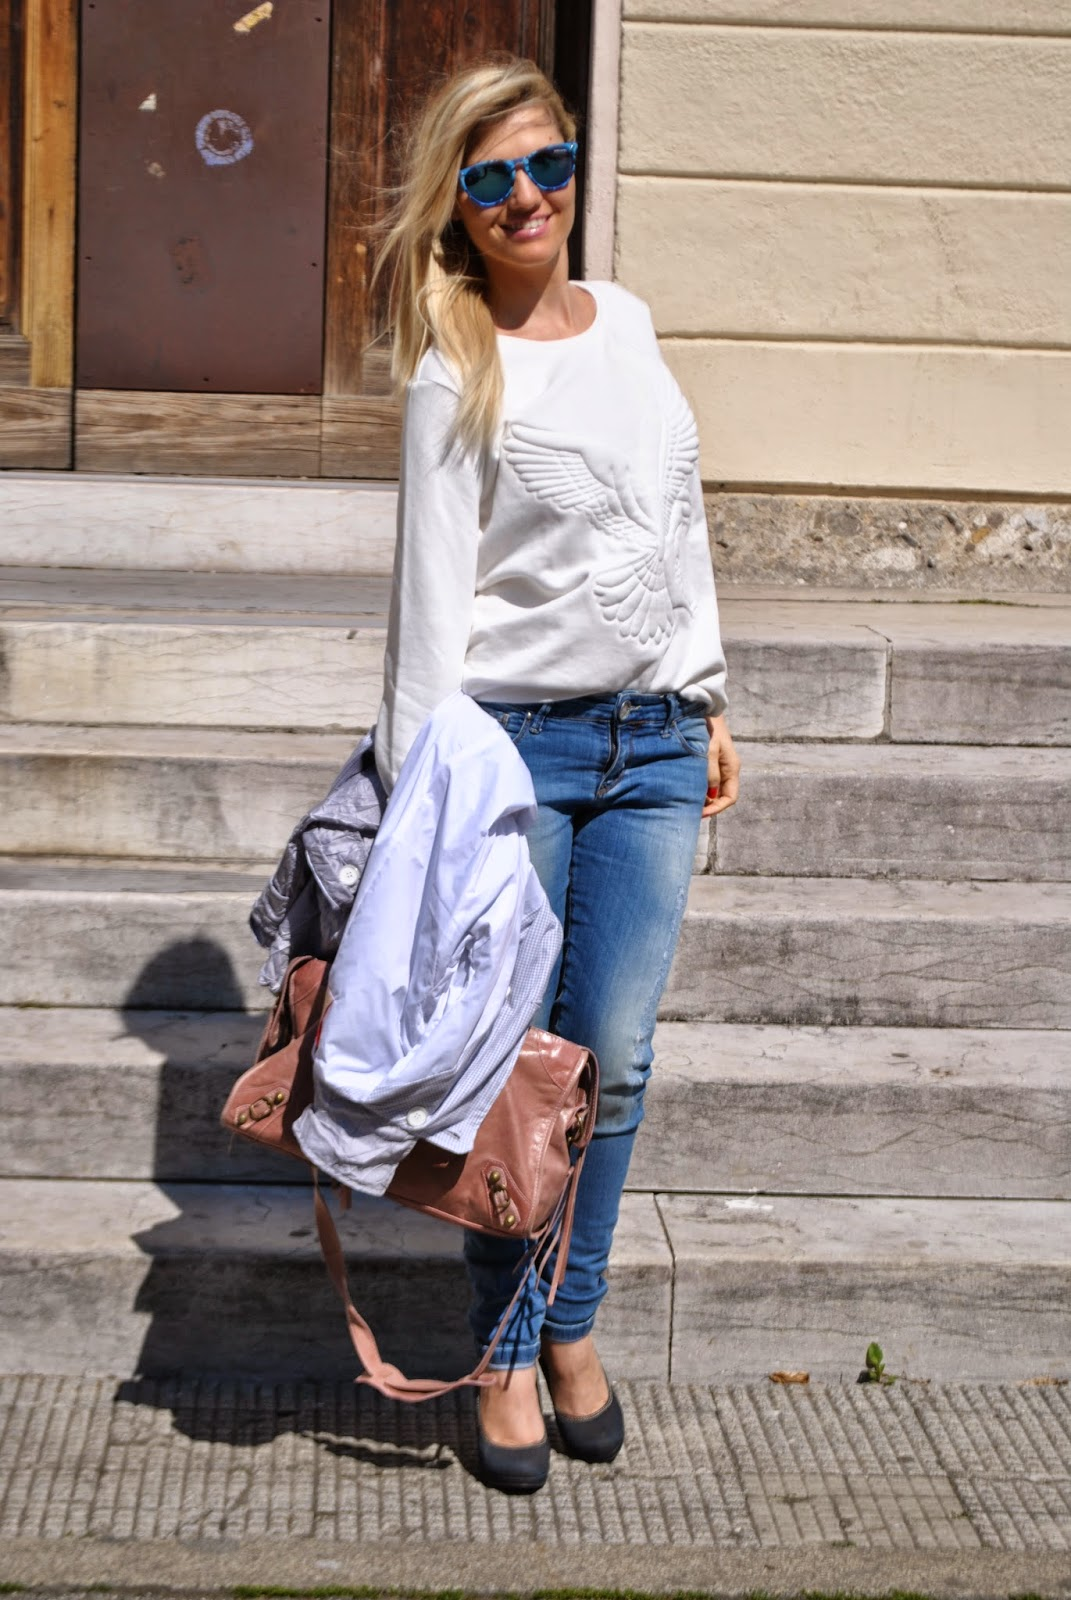 outfit felpa bianca come abbinare il bianco mariafelicia amgno fashion blogger  outfit felpa bianca jeans skinny outfit jeans e tacchi outfit trench come abbinare il trench mariafelicia magno colorblock by felym mariafelicia magno fashion blogger fashion blogger bionde fashion blogger italiane blog di moda come abbinare il bianco outfit bianco abbianmenti jeans e tacchi jeans skinny come abbinare i jeans skinny come abbinare il trench fattori abbigliamento trench fattori pied de poule how to wear jeans and heels how to wear trench coat  how to wear white outfit primaverili outfit primaverili donna outfit casual primaverili outfit aprile 2015 blonde girls fashion bloggers italy milano replay pimkie